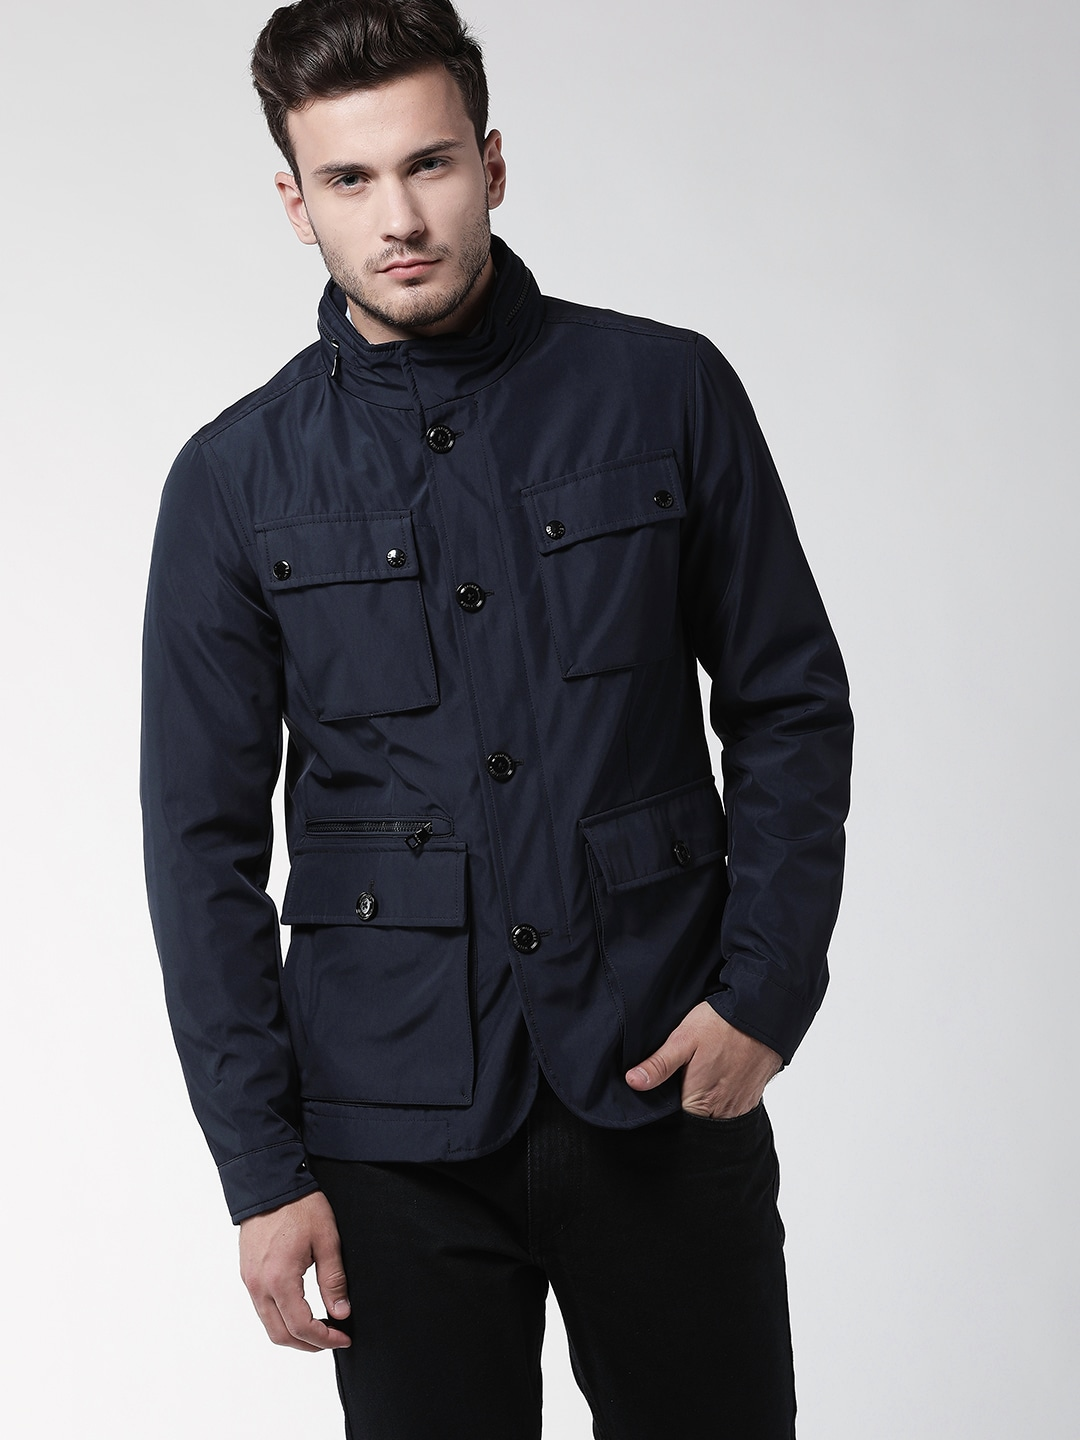 3770813aa3a6 Tommy Hilfiger Polo Jackets - Buy Tommy Hilfiger Polo Jackets online in  India